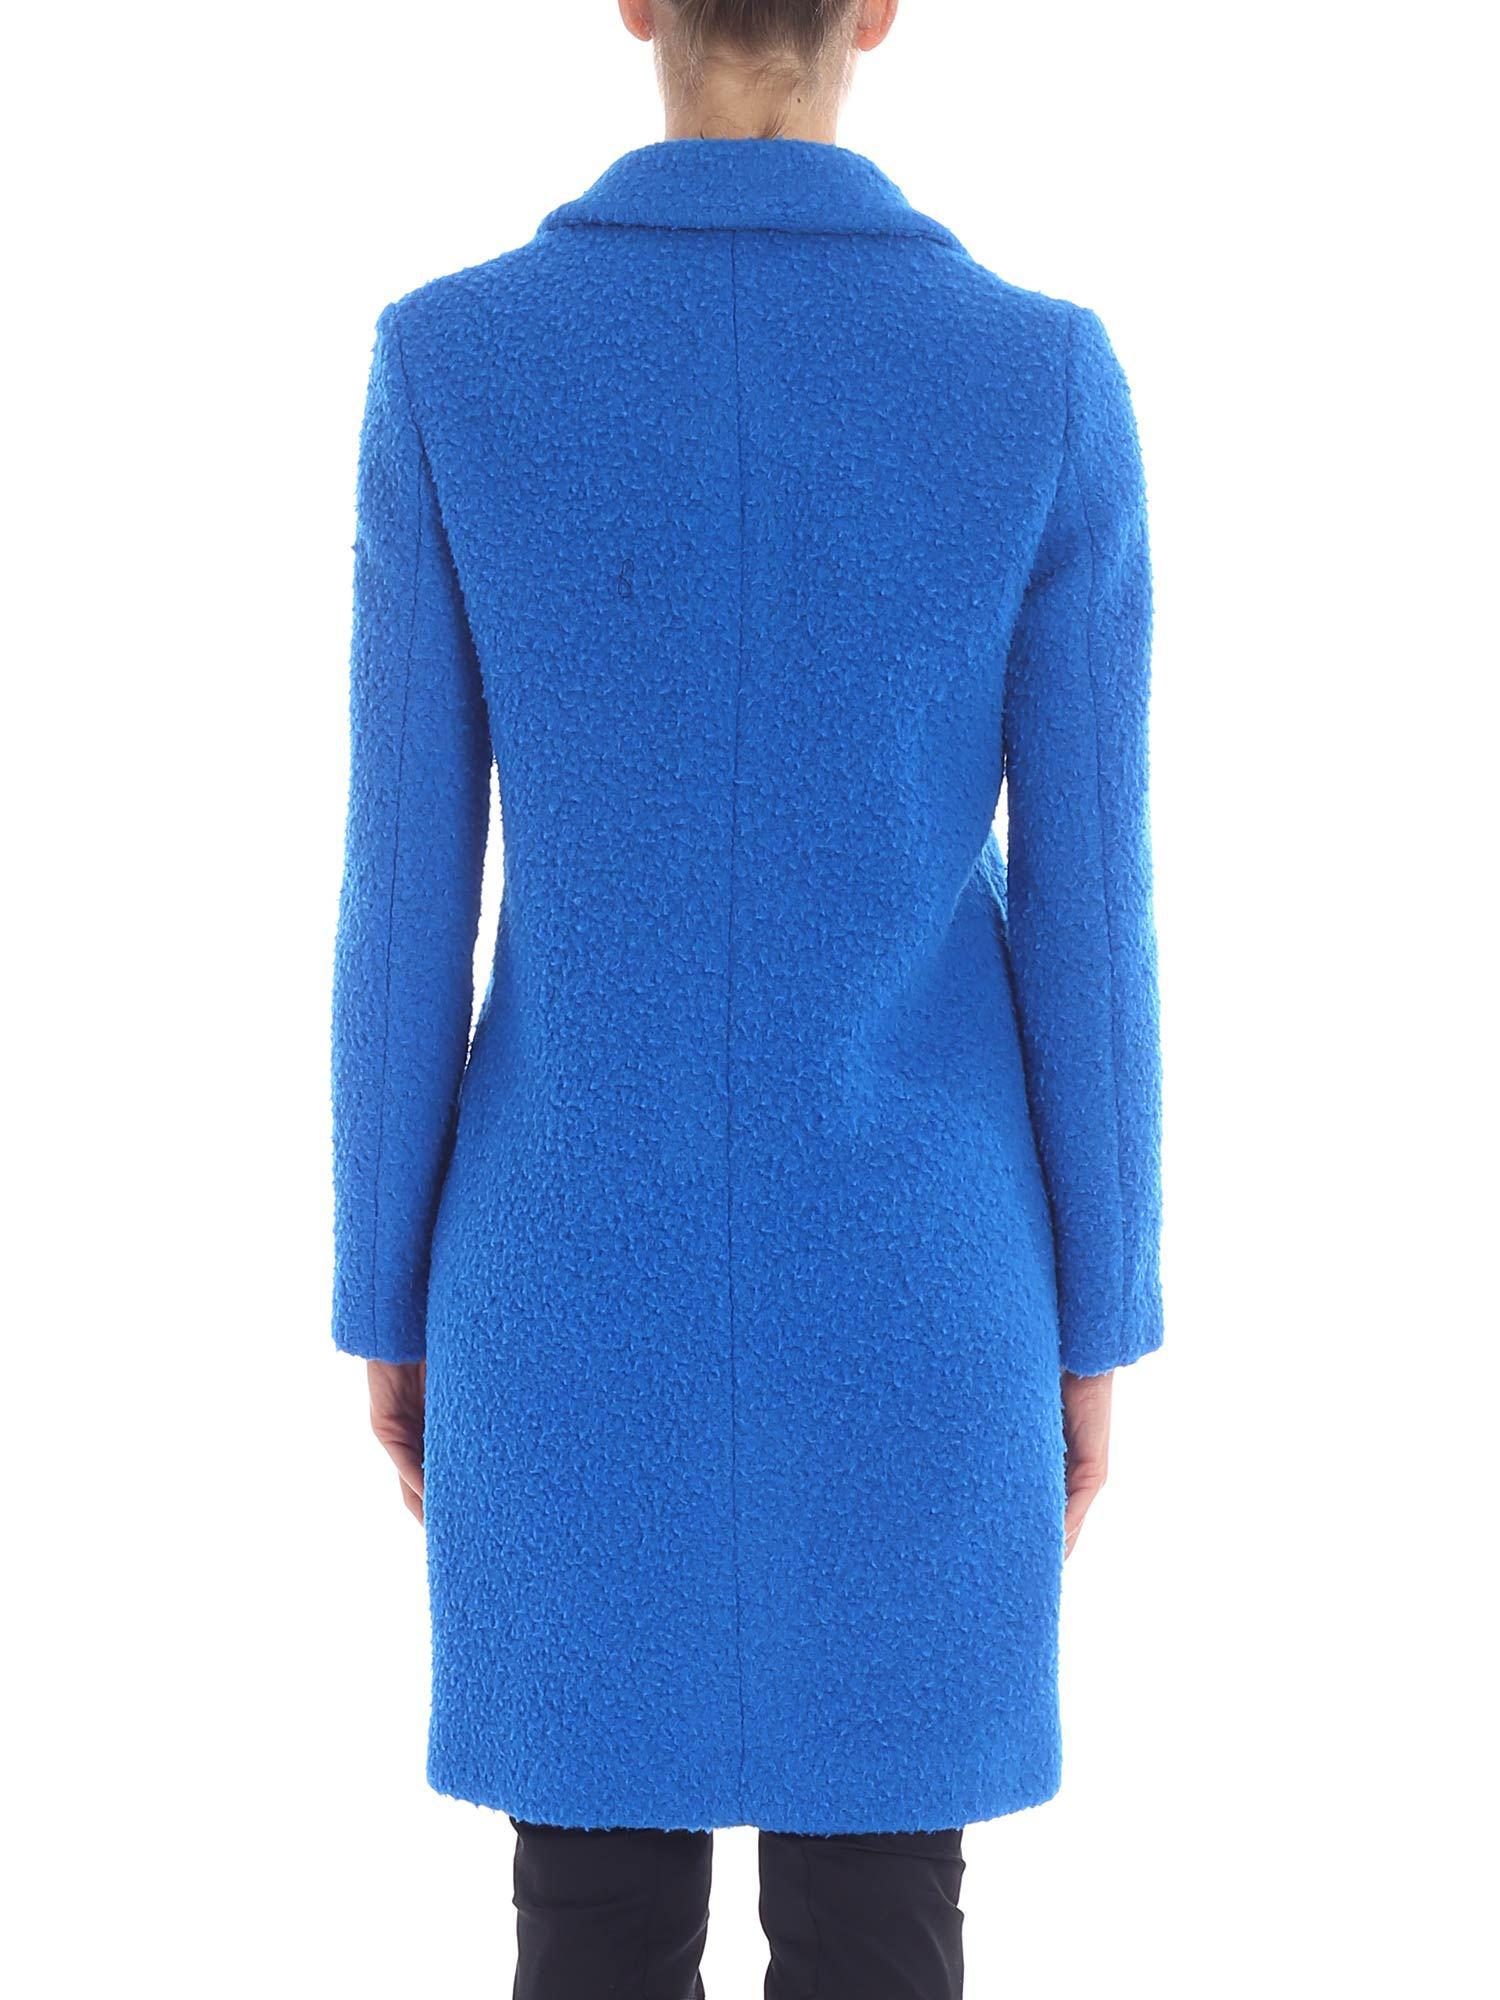 260383de msgm-blue-Electric-Blue-Virgin-Wool-Coat.jpeg